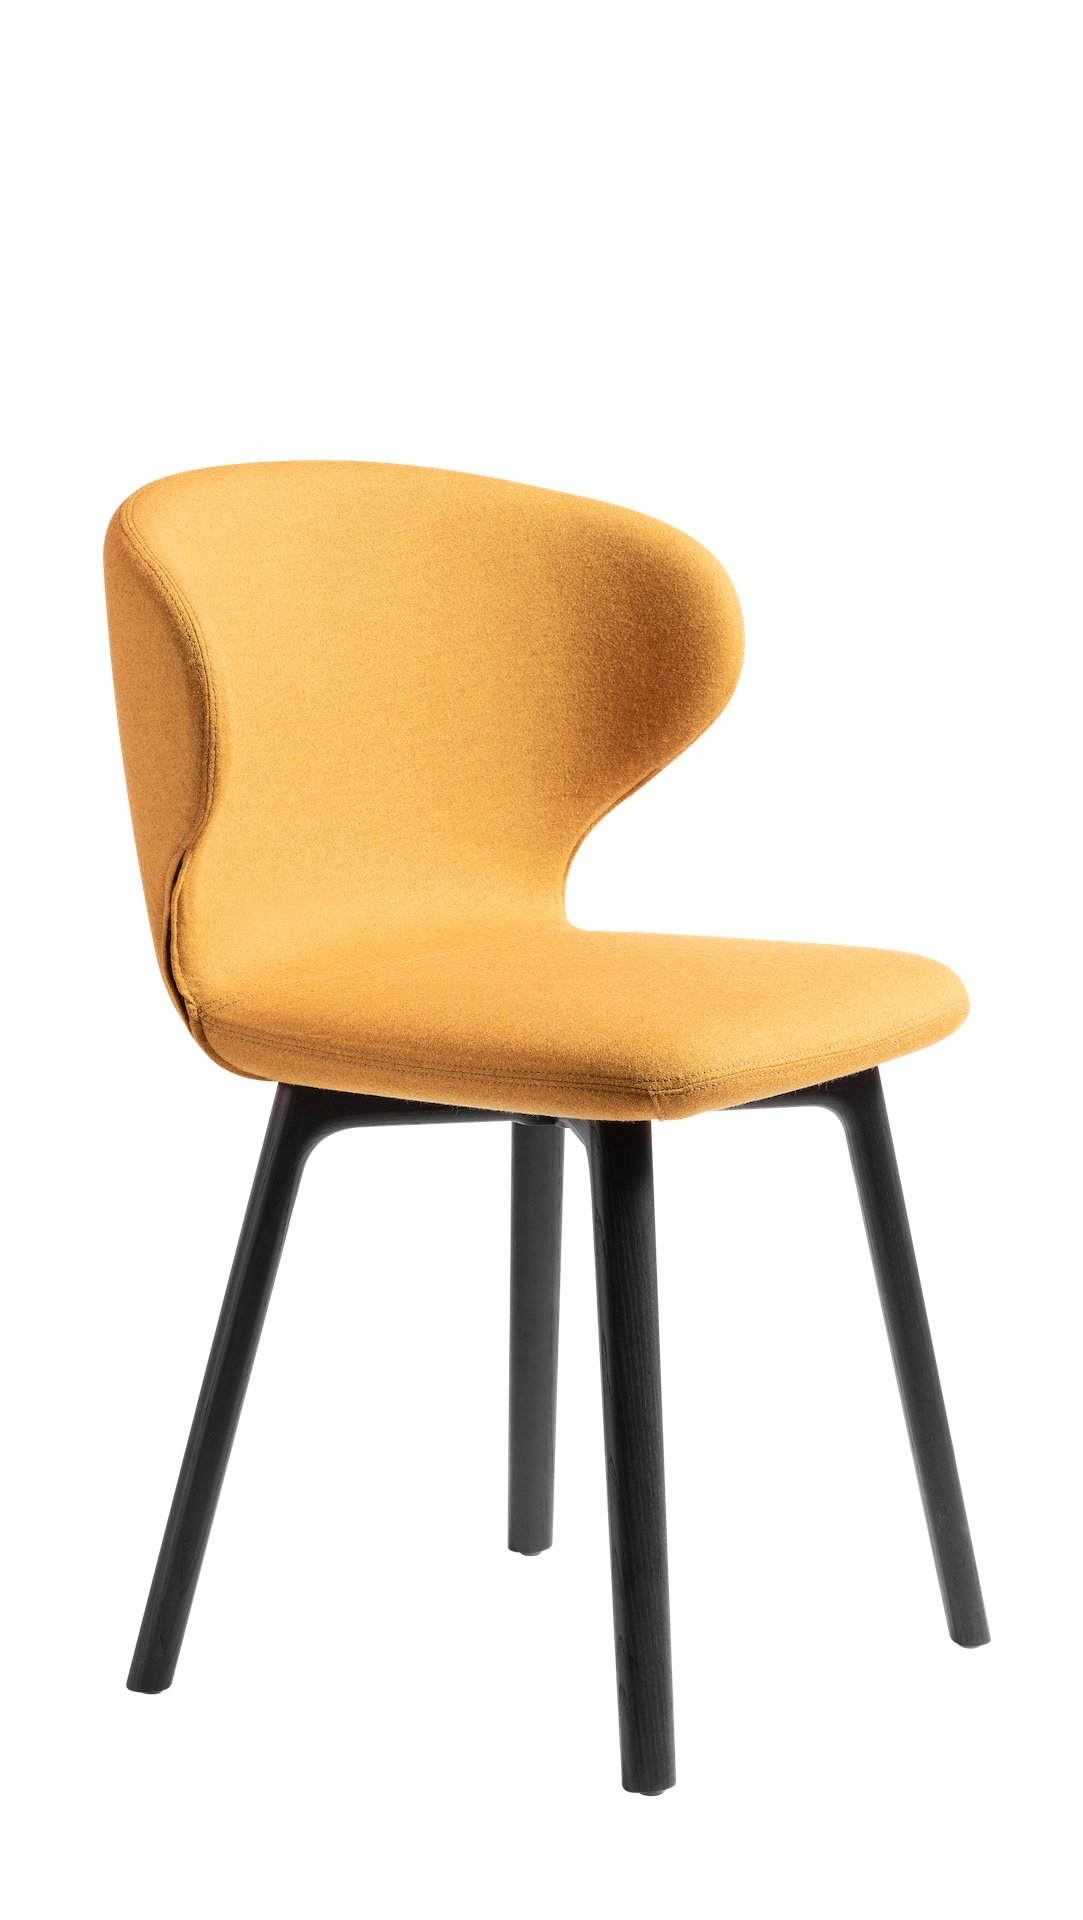 Mula Chair from Miniforms, designed by E-ggs